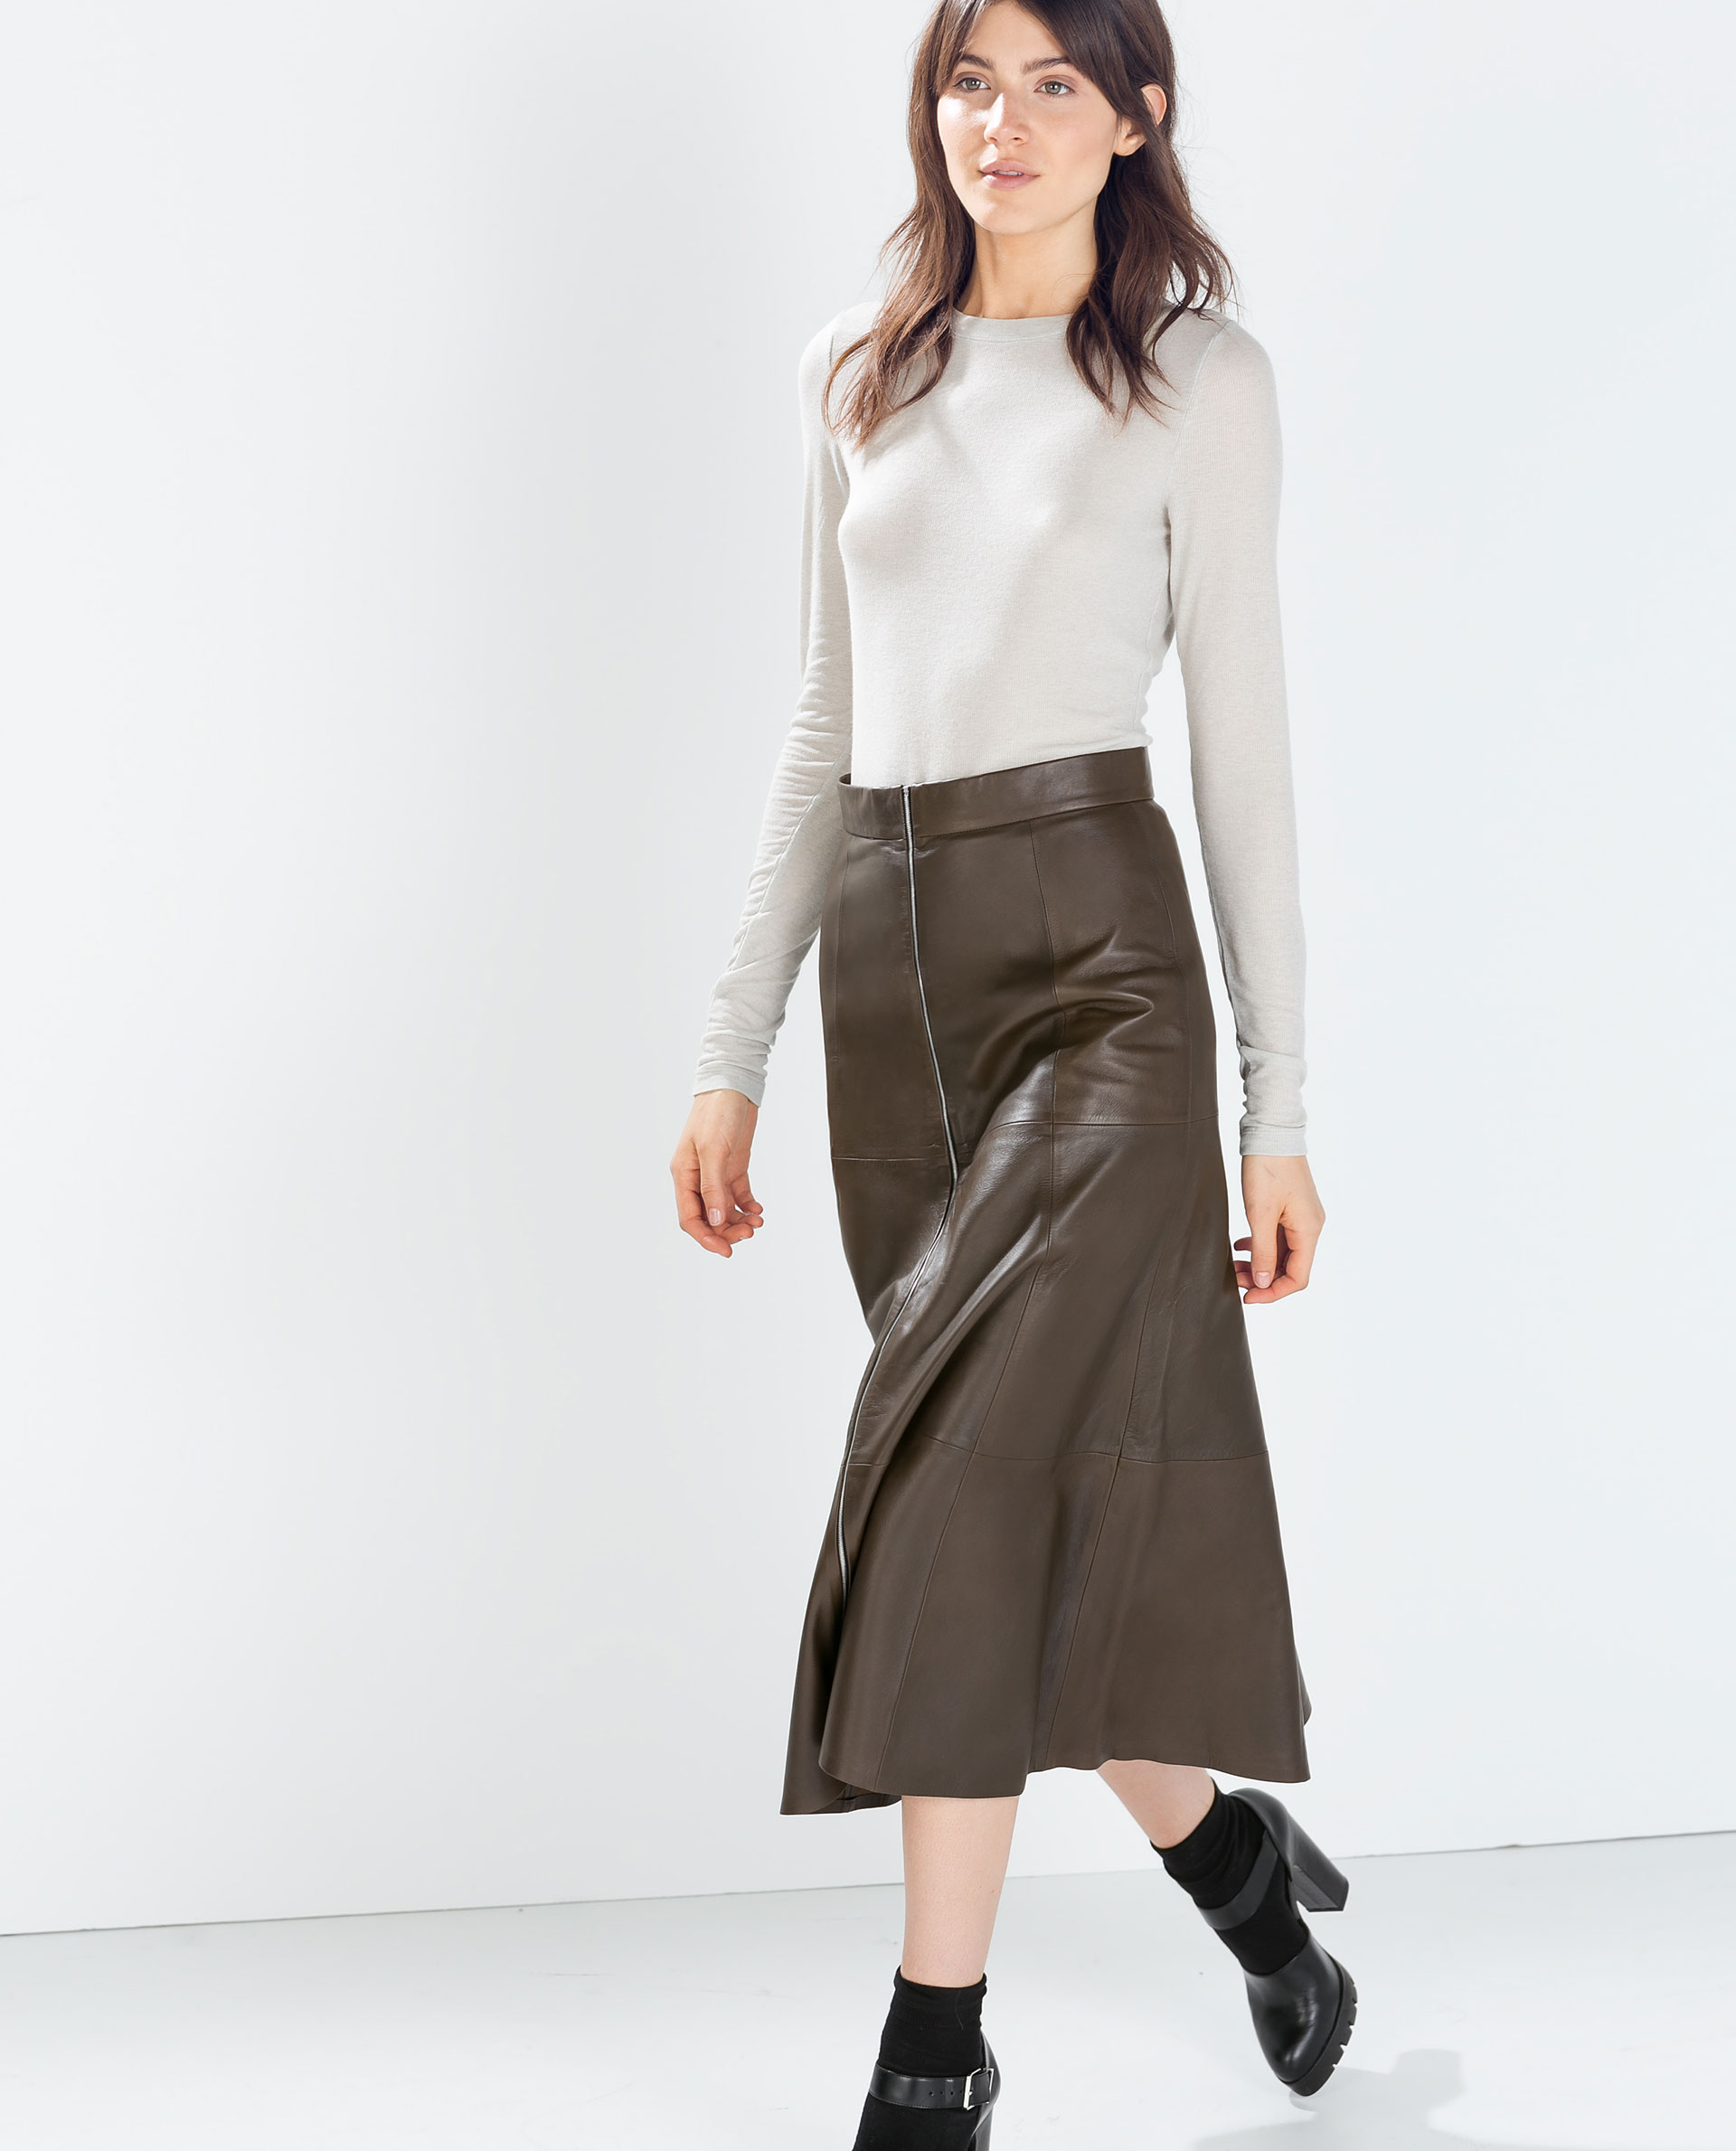 Khaki Green Leather Skirt - Dress Ala